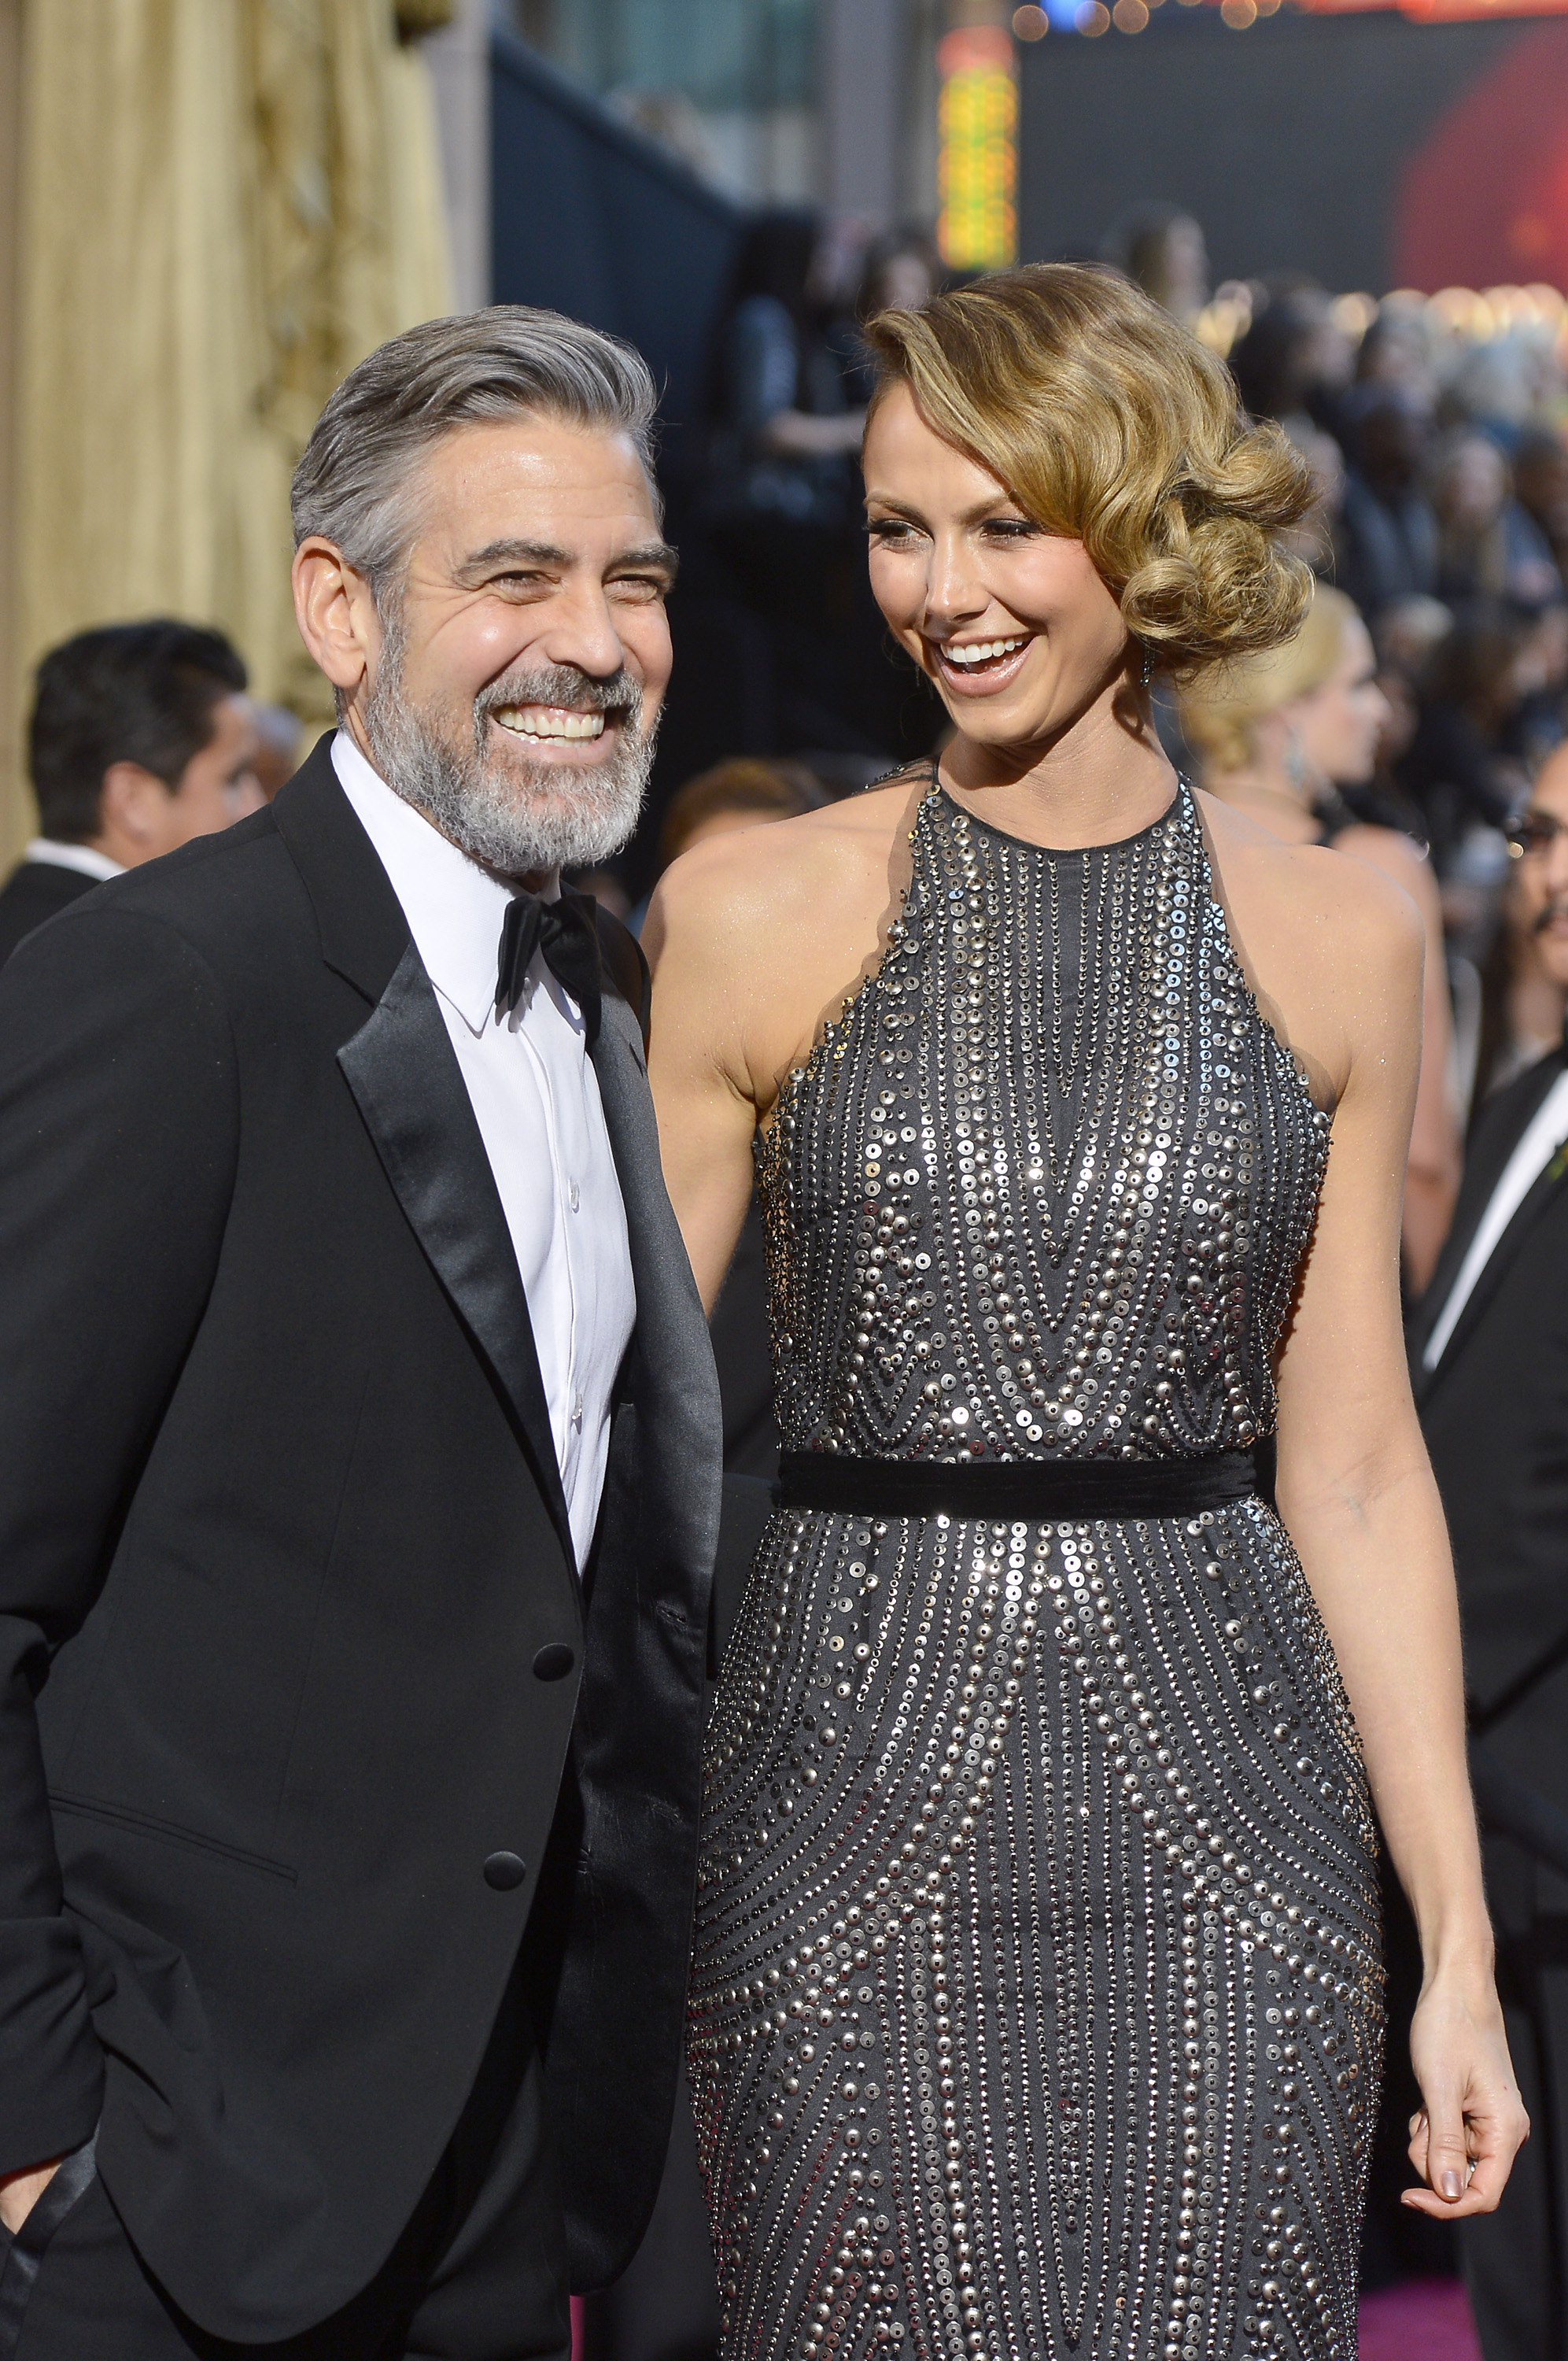 Stacy Keibler and George Clooney focused on having a laugh.